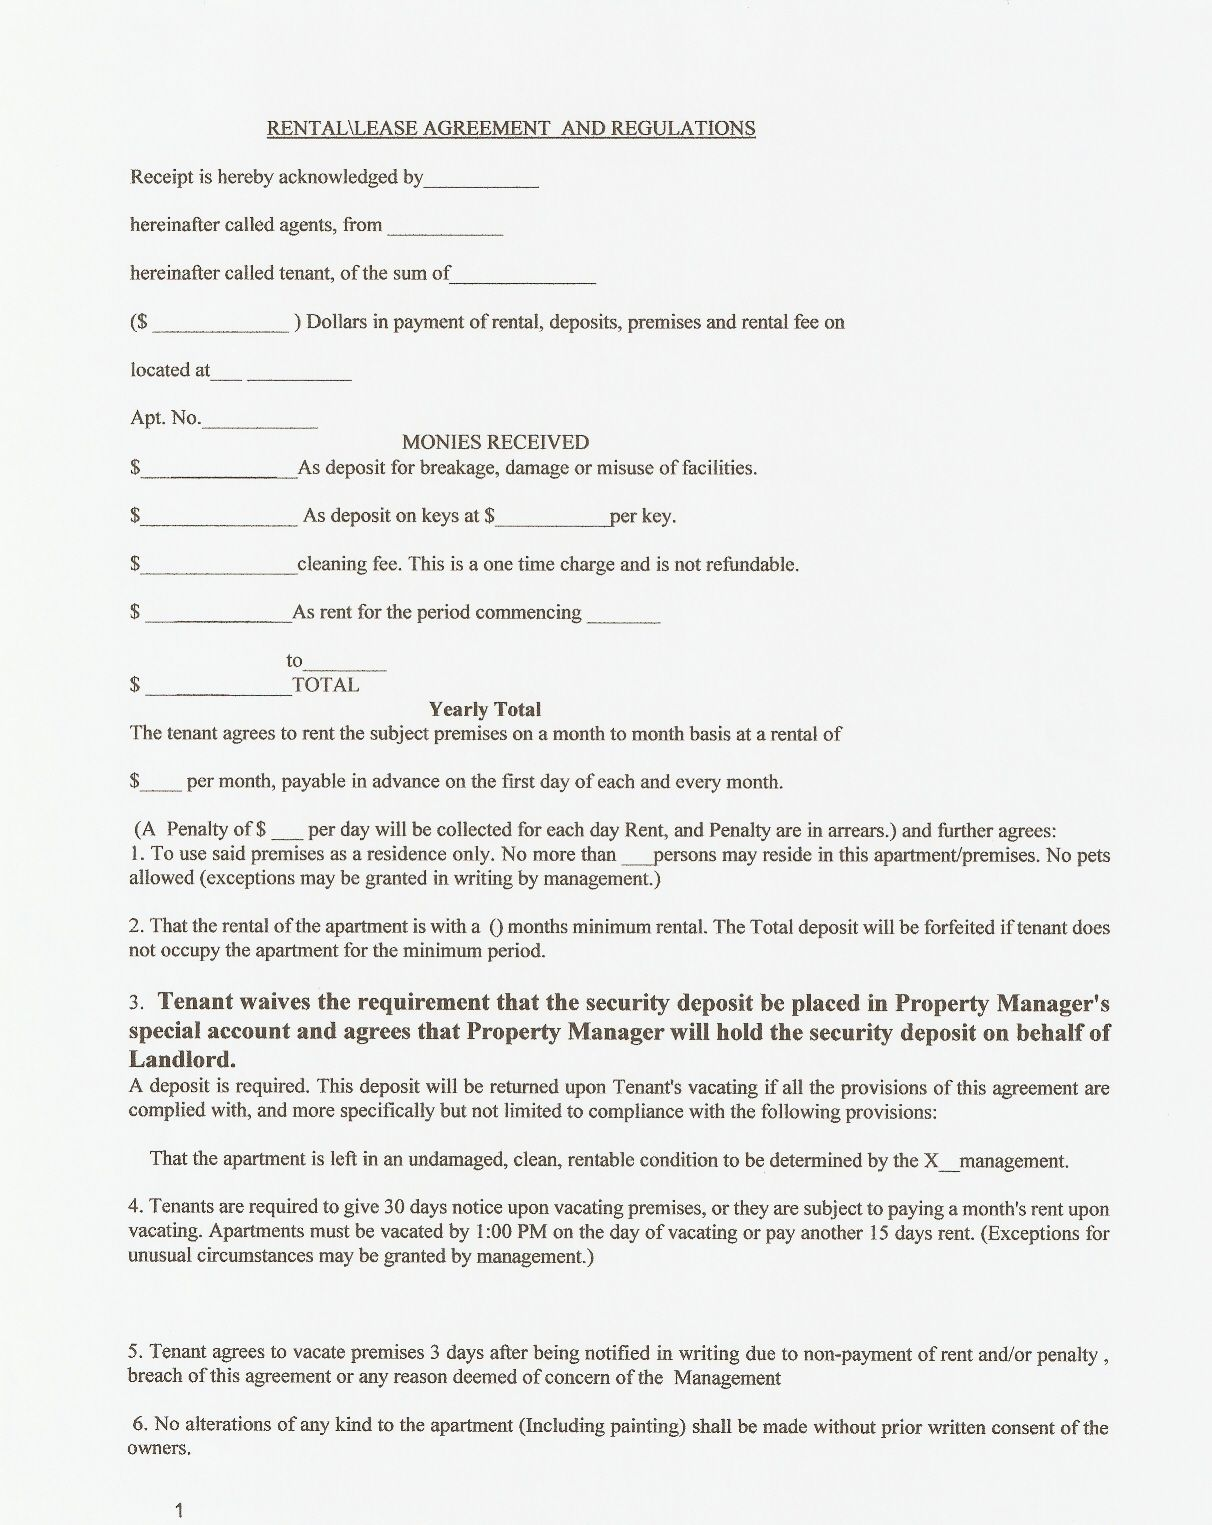 Lease Agreement | Lease Agreements | Pinterest